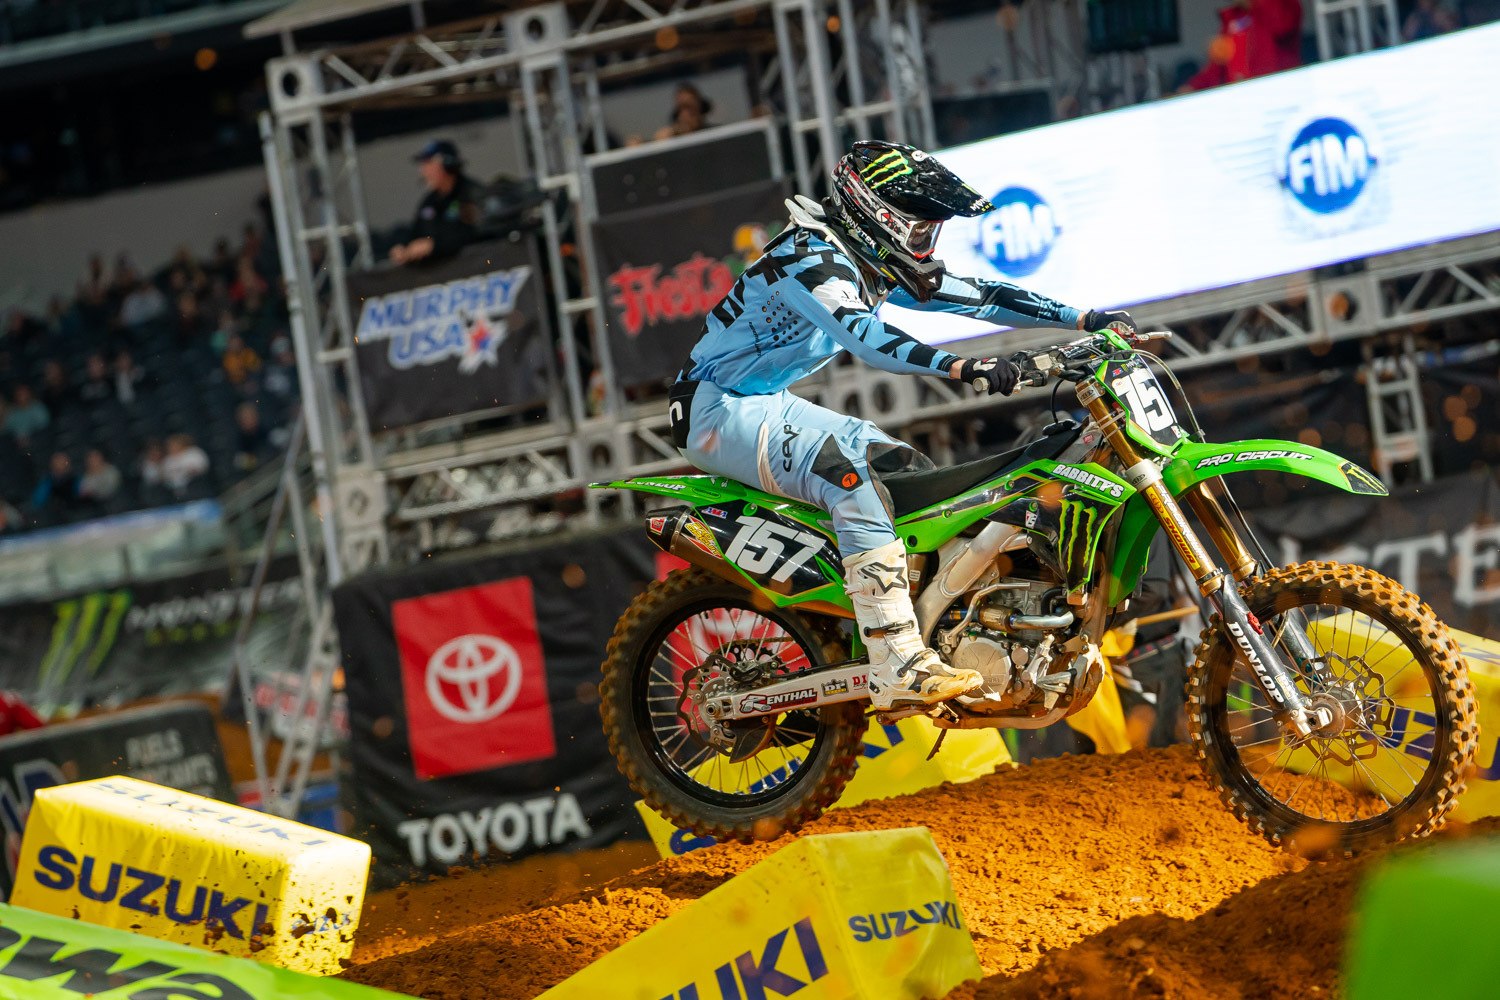 2020-ARLINGTON-SUPERCROSS_KICKSTART_0043